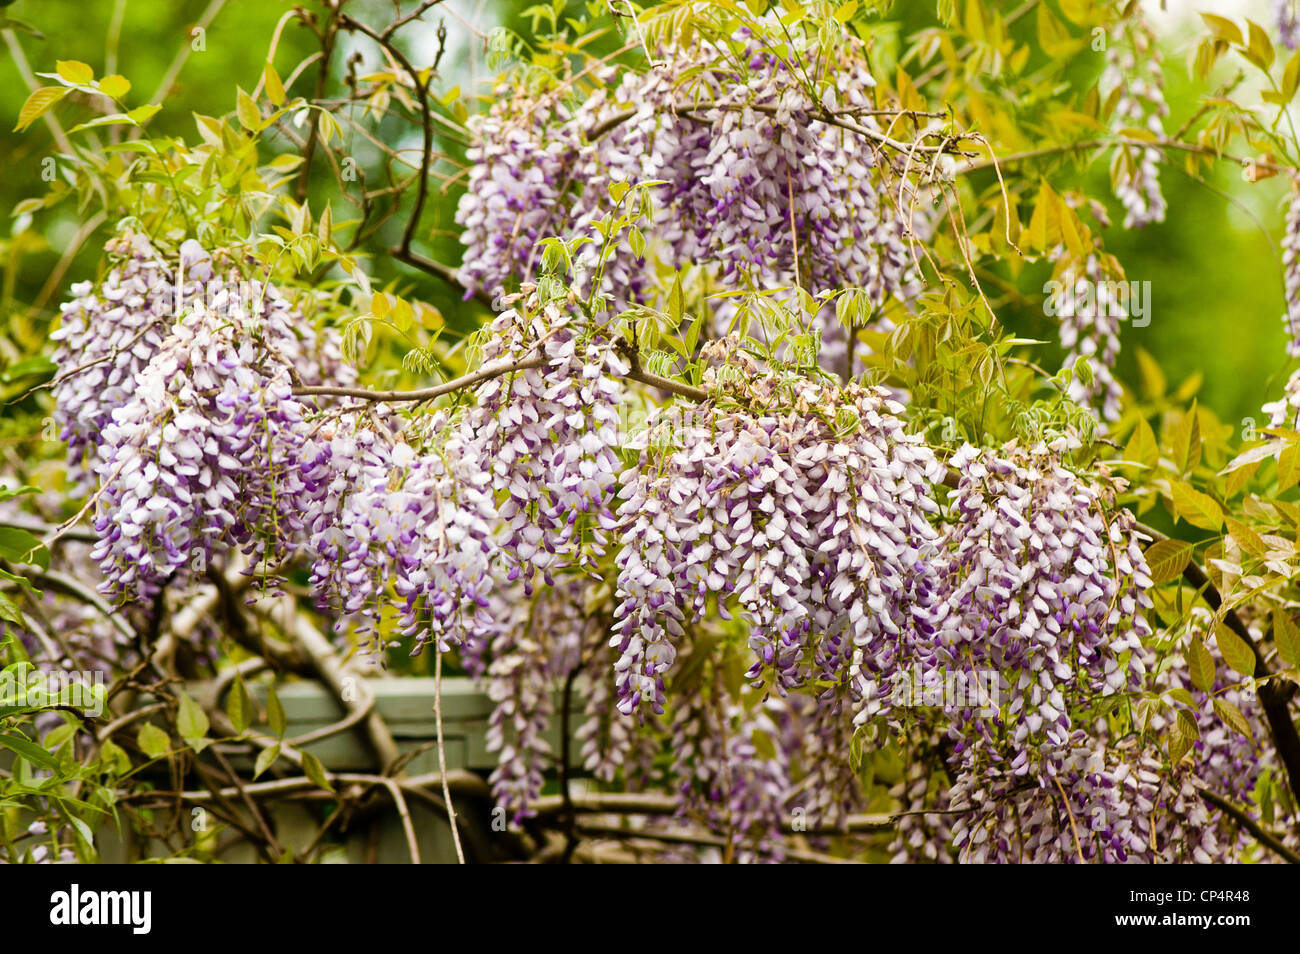 Pale Violet Purple Lilac Pink Flowers Of Wisteria Climbing Vine